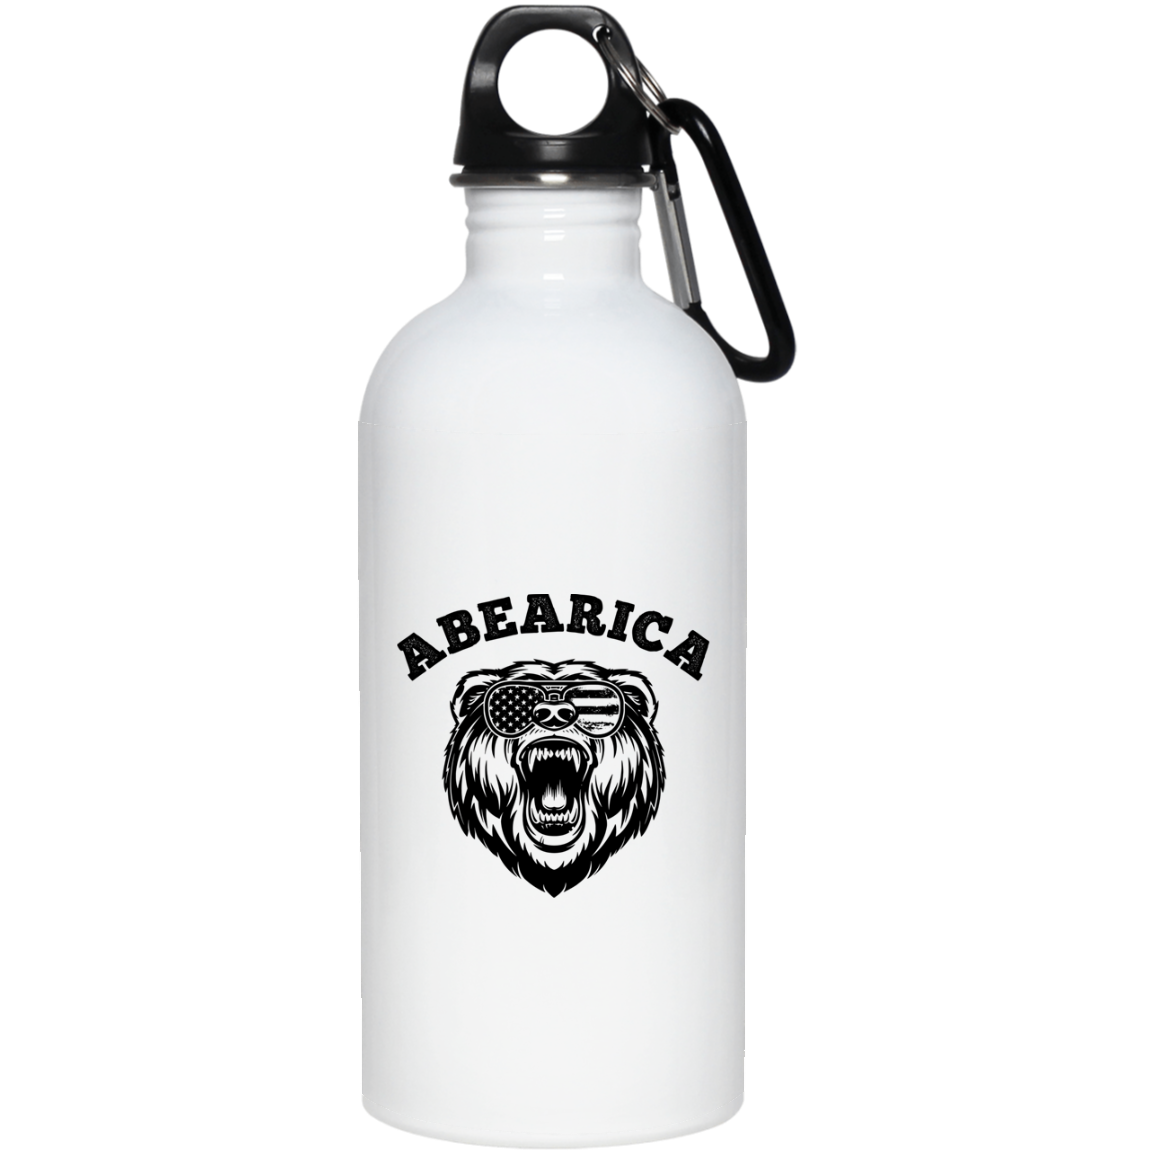 Patriotic - Abearica 20 oz. Stainless Steel Water Bottle